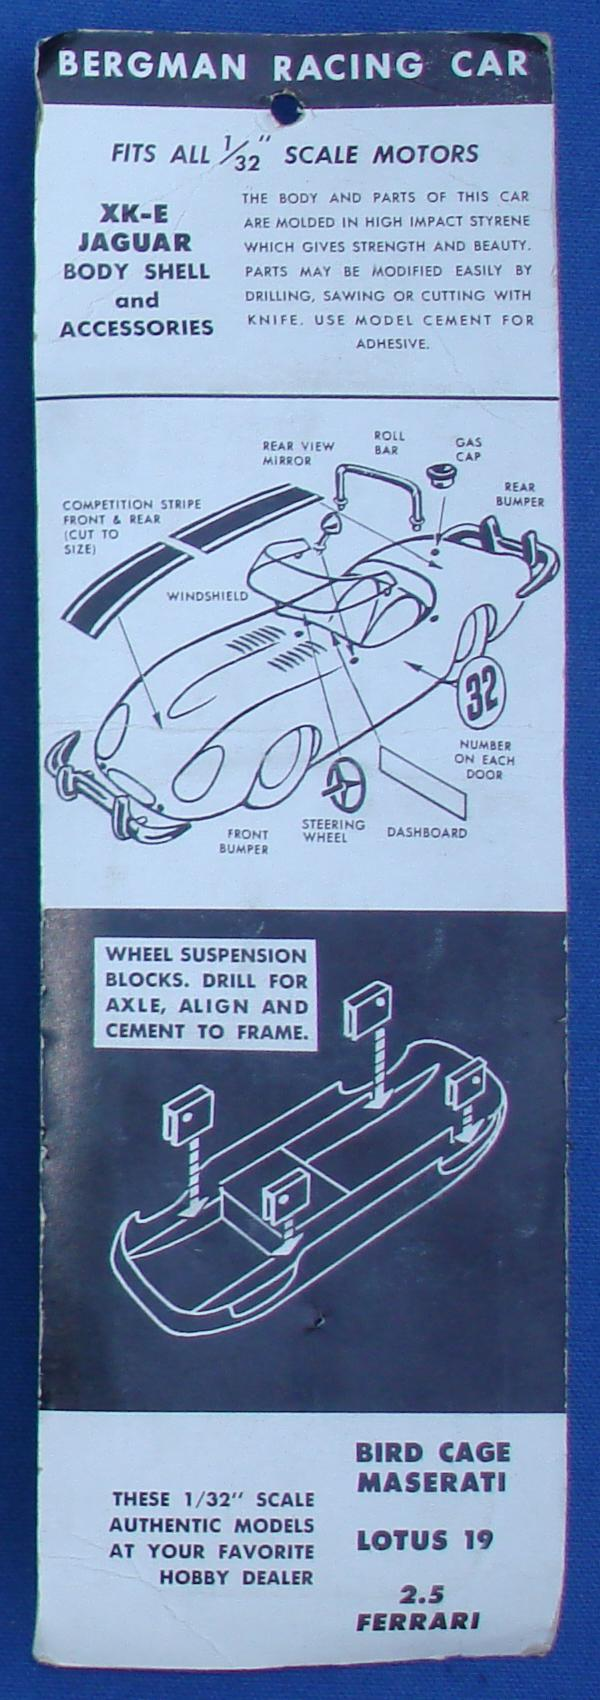 Bergman 132 Scale Jaguar XKE Slot Car Racing Body Kit Contents Decals Instructions